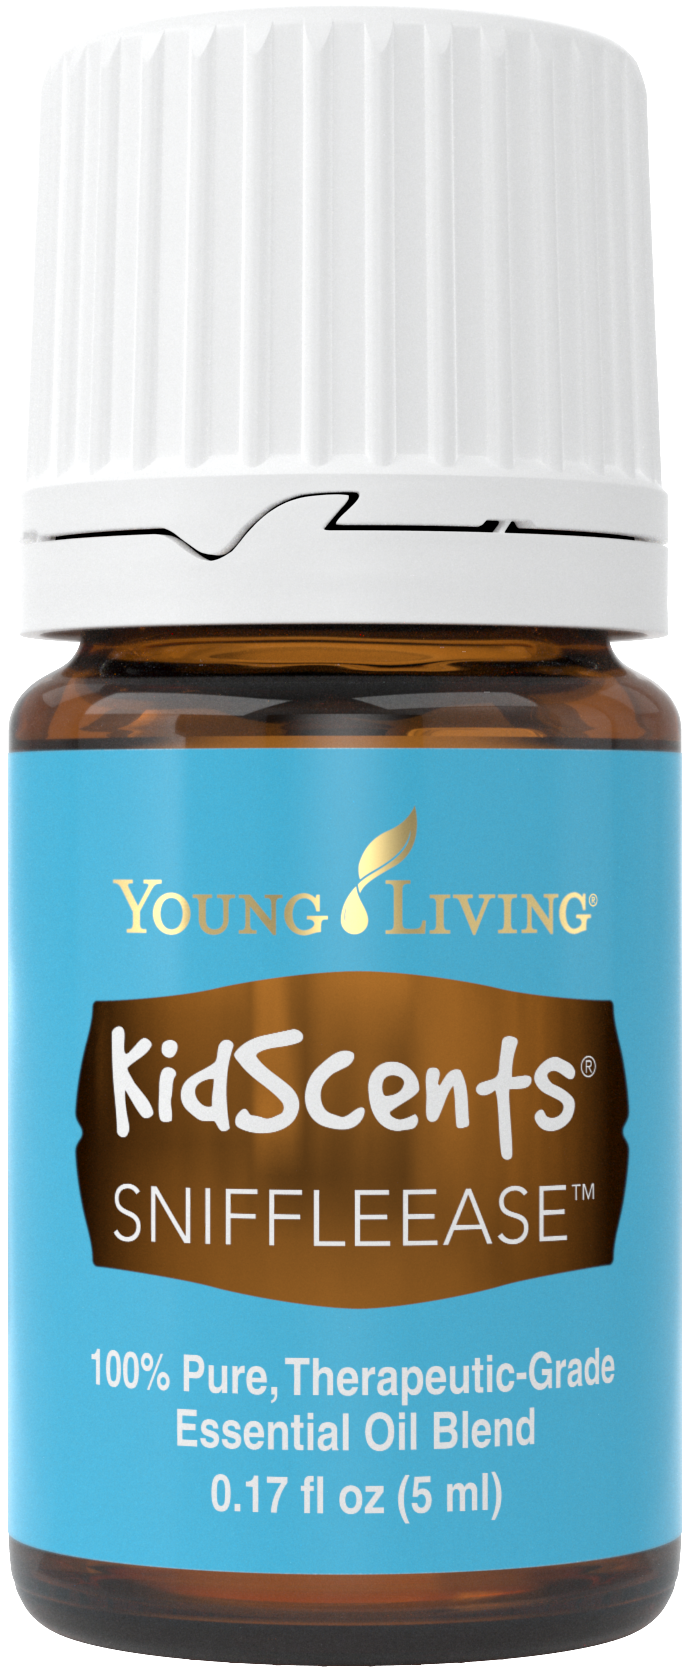 KidScents SniffleEase essential oil blend | Young Living